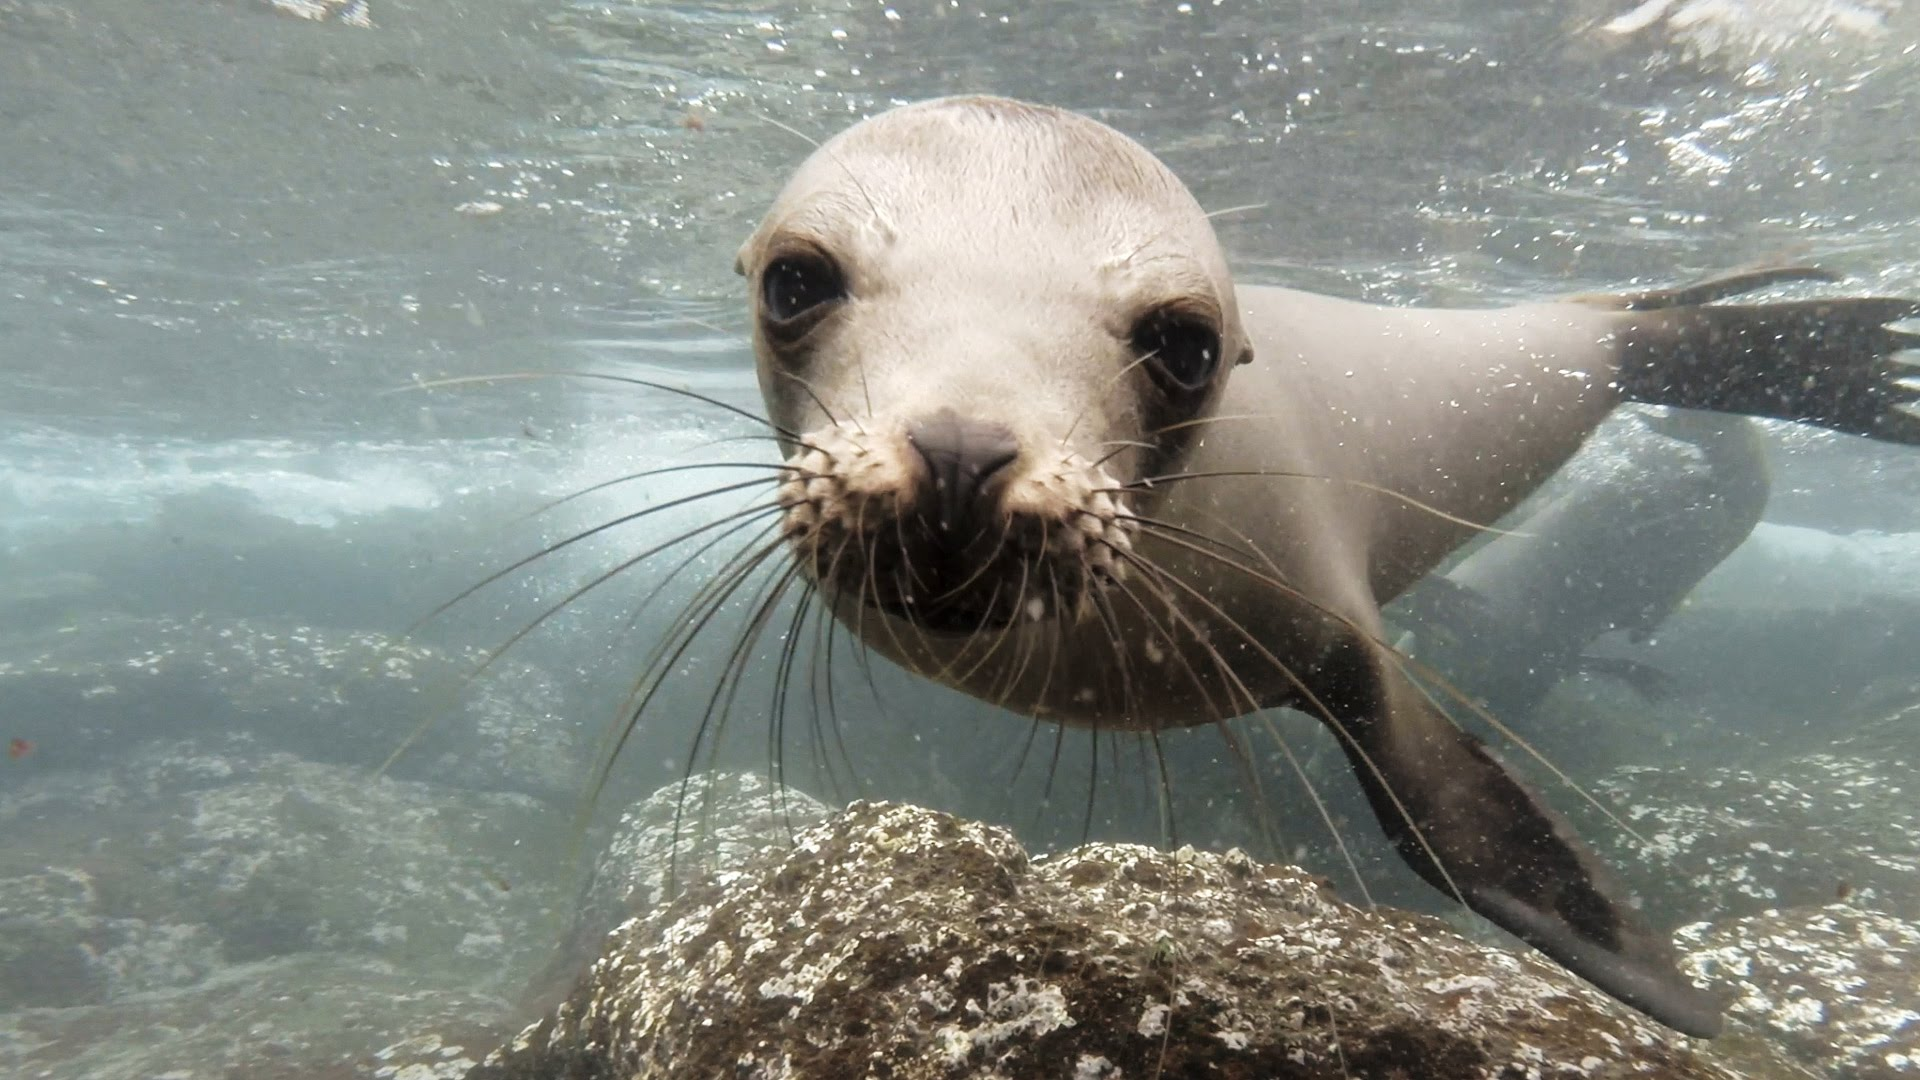 Michael Duffy Sea Lion story….the rest of the story